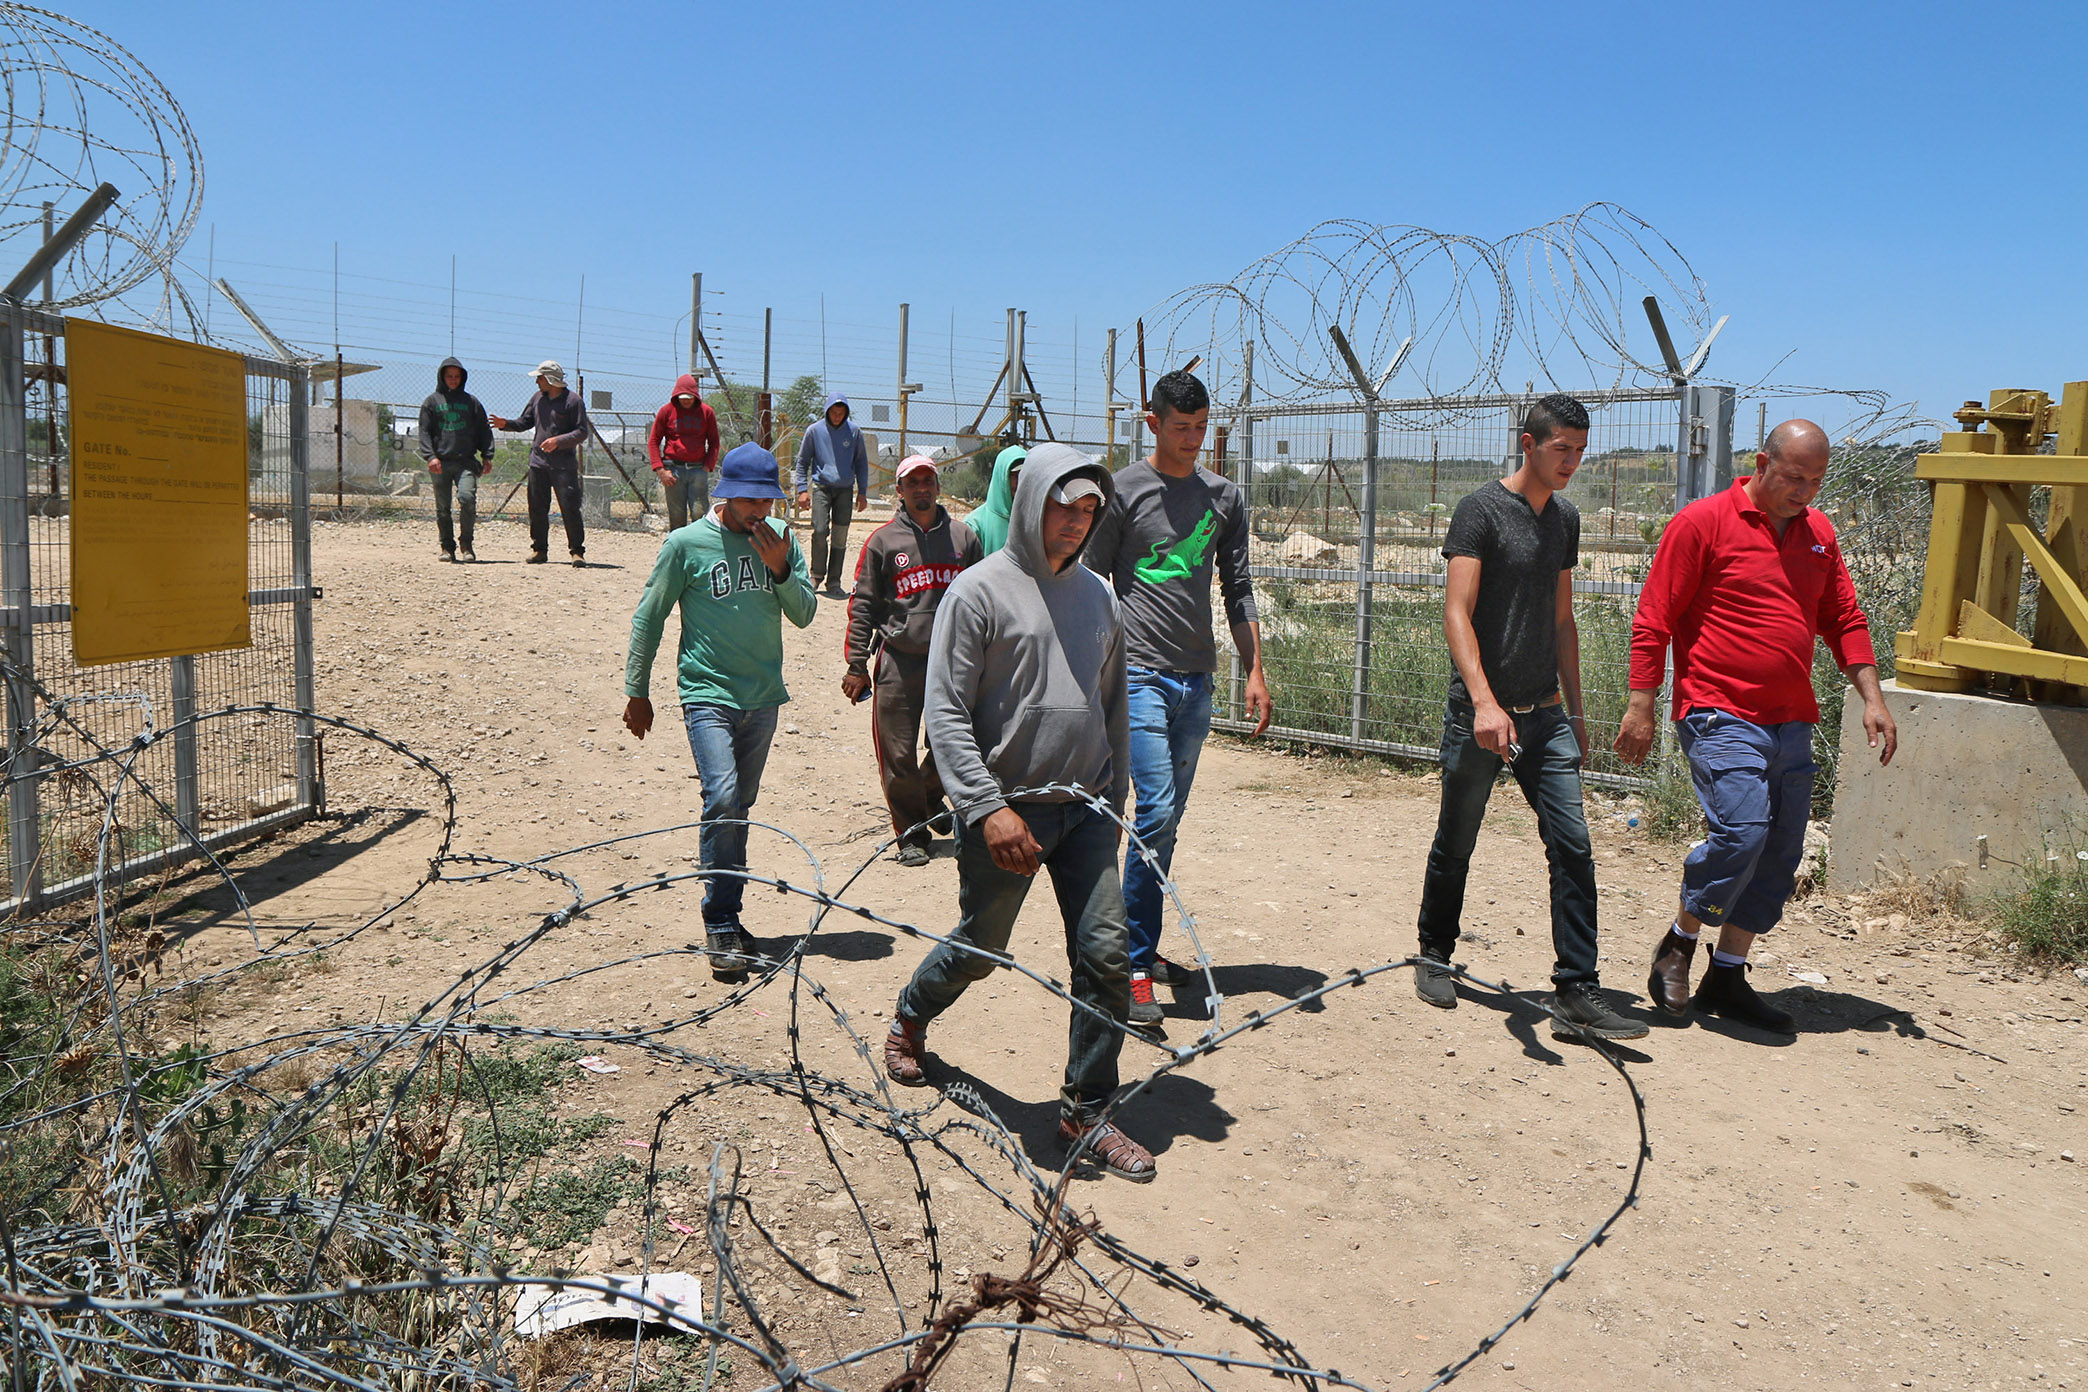 Palestinian farmers walked  beside the agricultural gate of the separation fence in Falamya village (gate 914), West Bank, May 17, 2015.   (Photo by Ahmad Al-Bazz/GroundTruth)